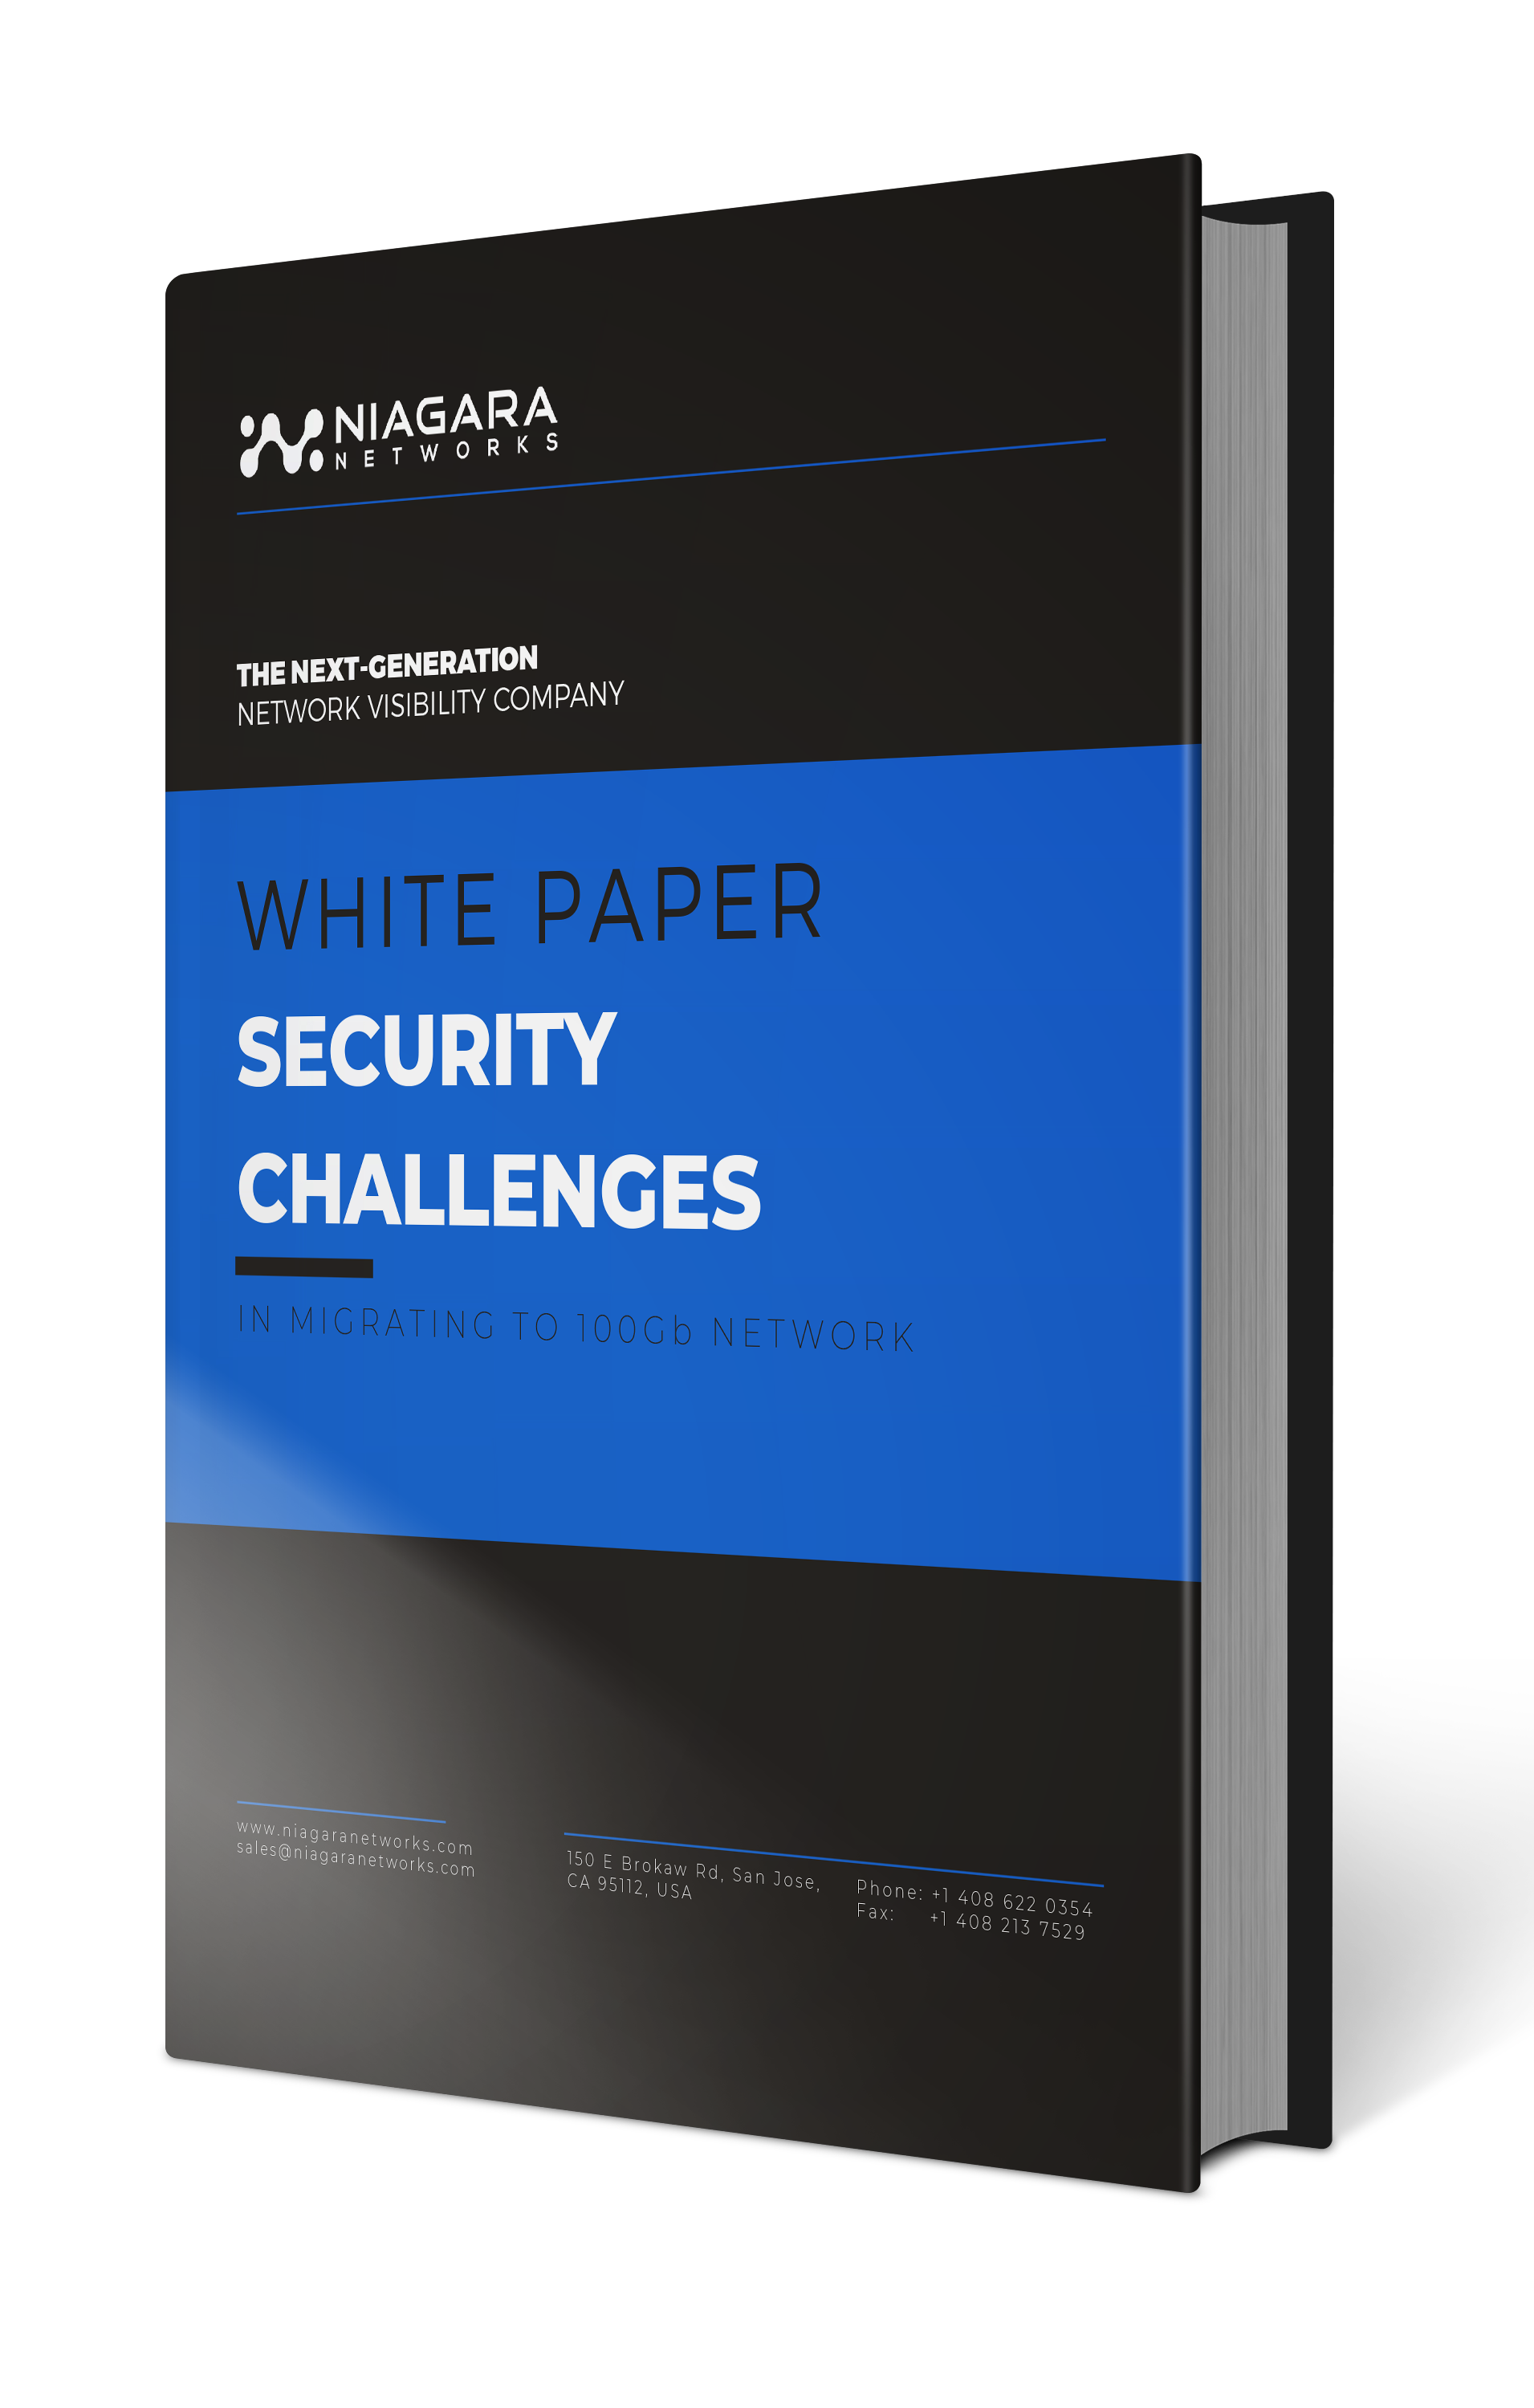 WP_SECURITY-CHALLENGES.png